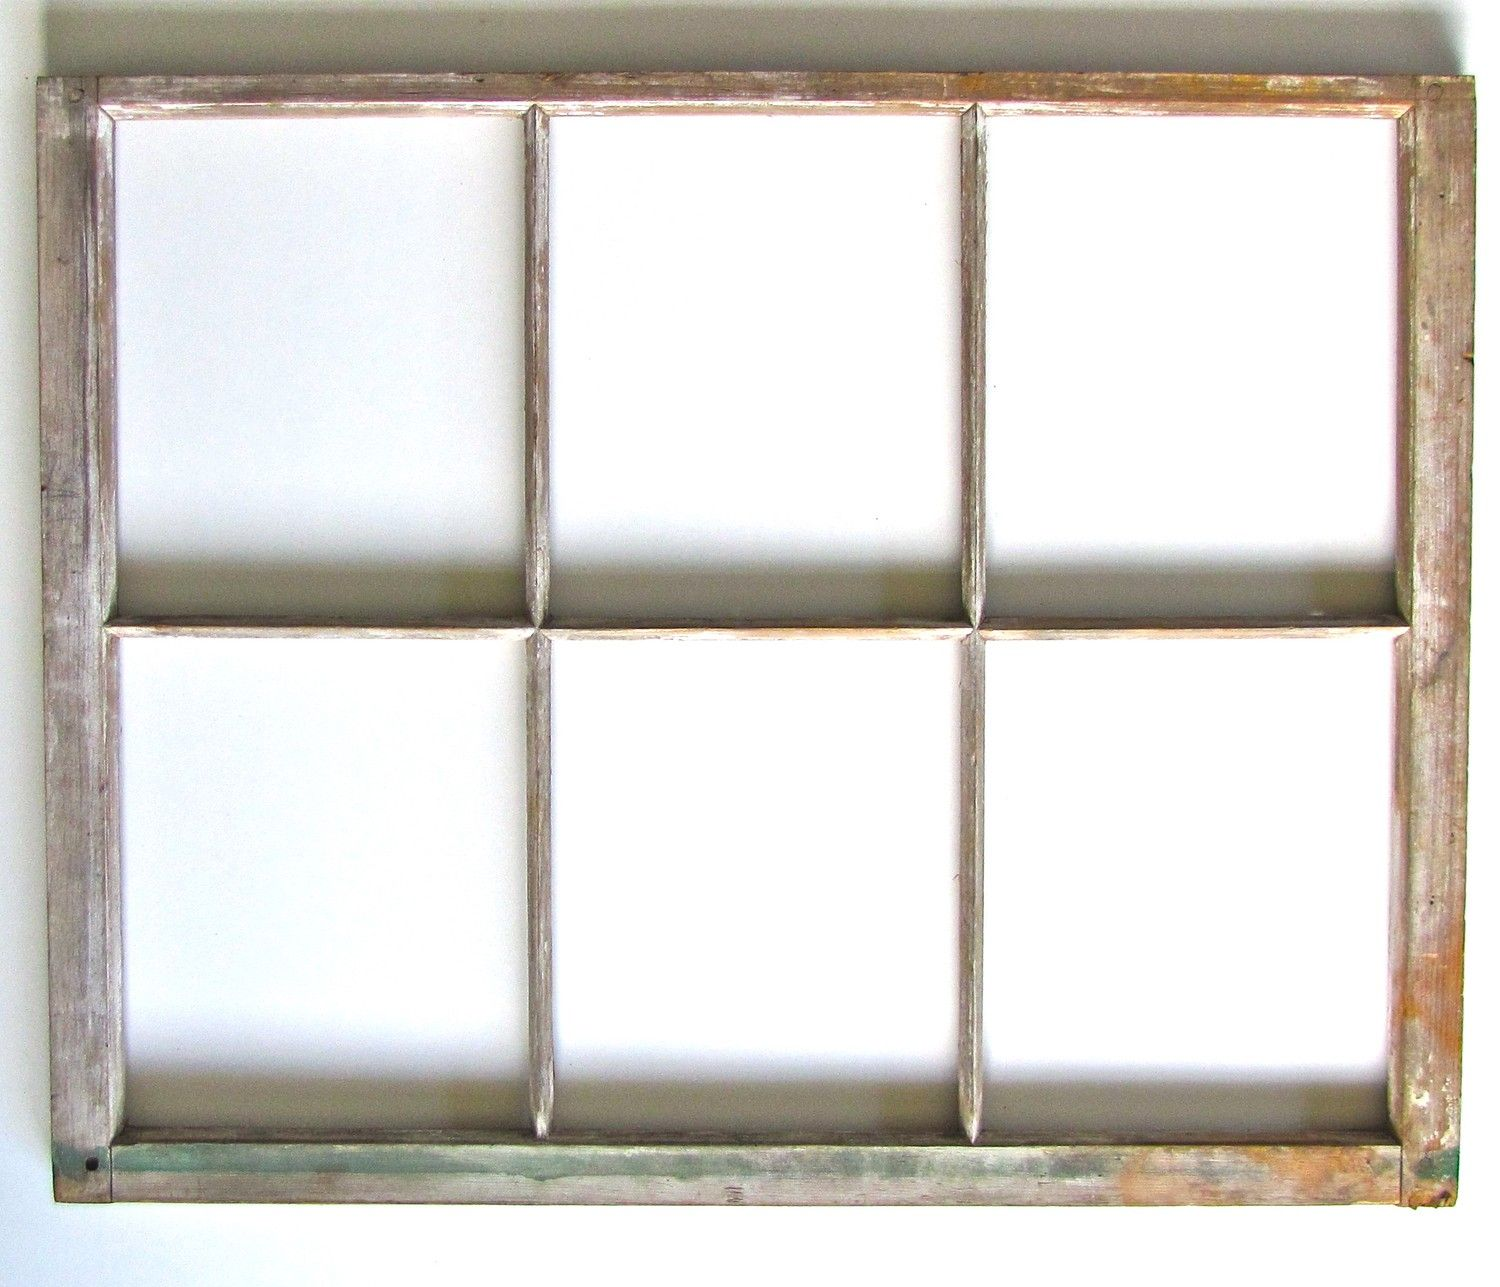 vintage wood six pane window frame ready for mirror or hanging 3500 via etsy